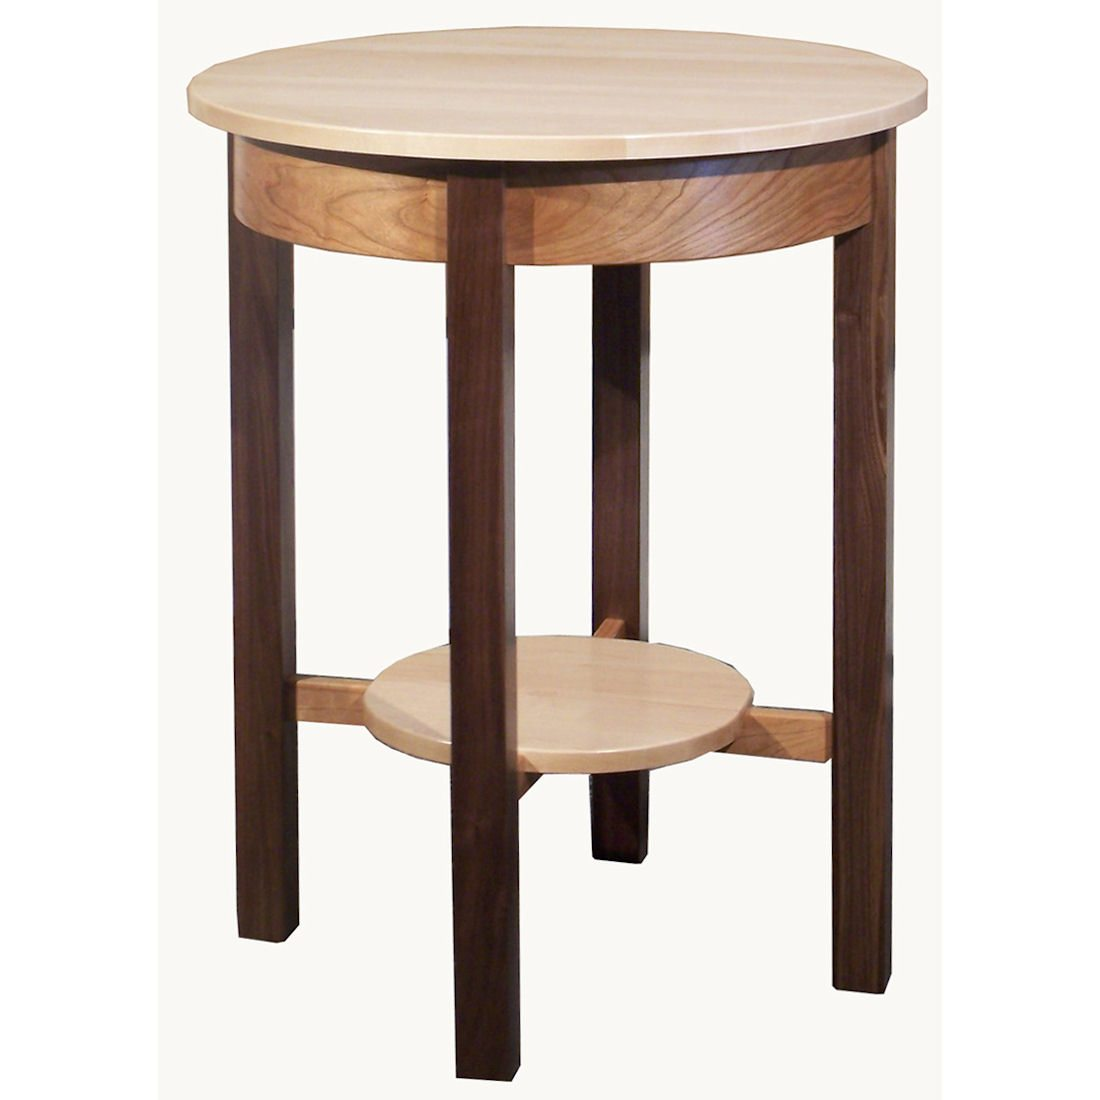 Tri-Wood Occasional Tables 2062 Round Table